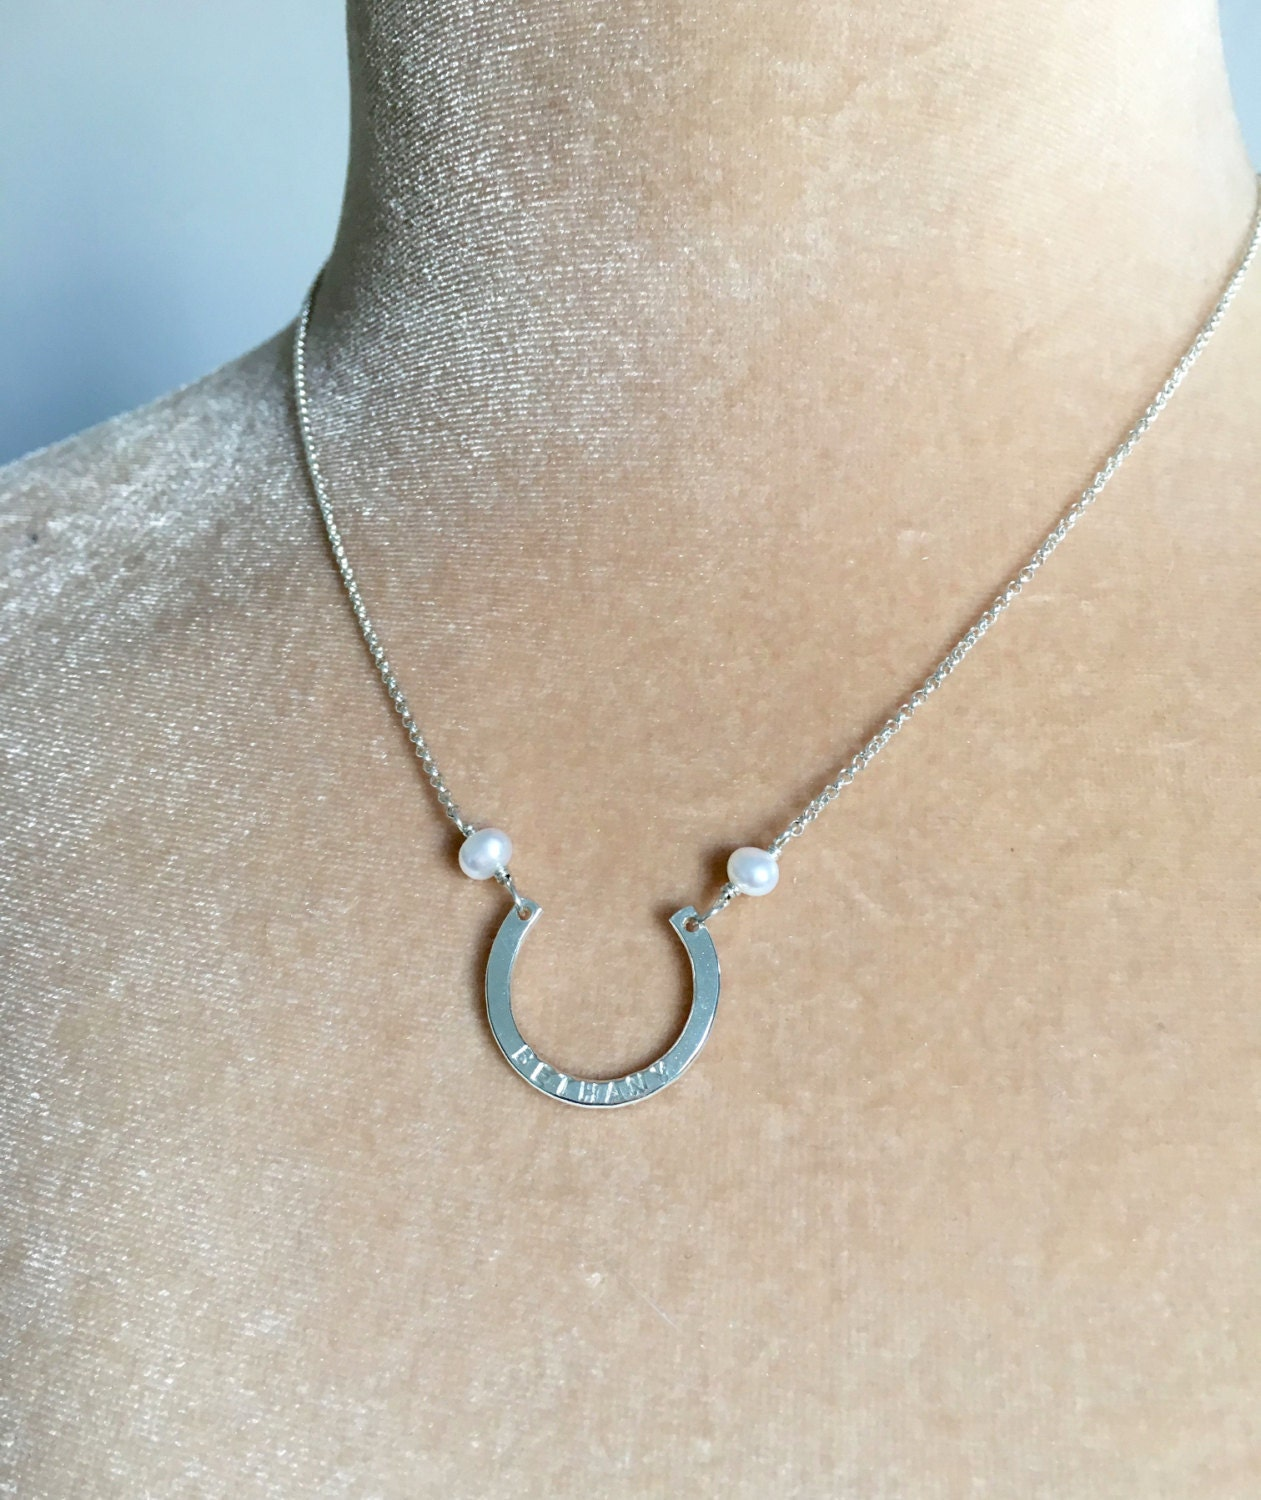 Silver horseshoe necklace for her name necklace for bridesmaid gift for bride on wedding day gifts from maid of honor  Gwyneth